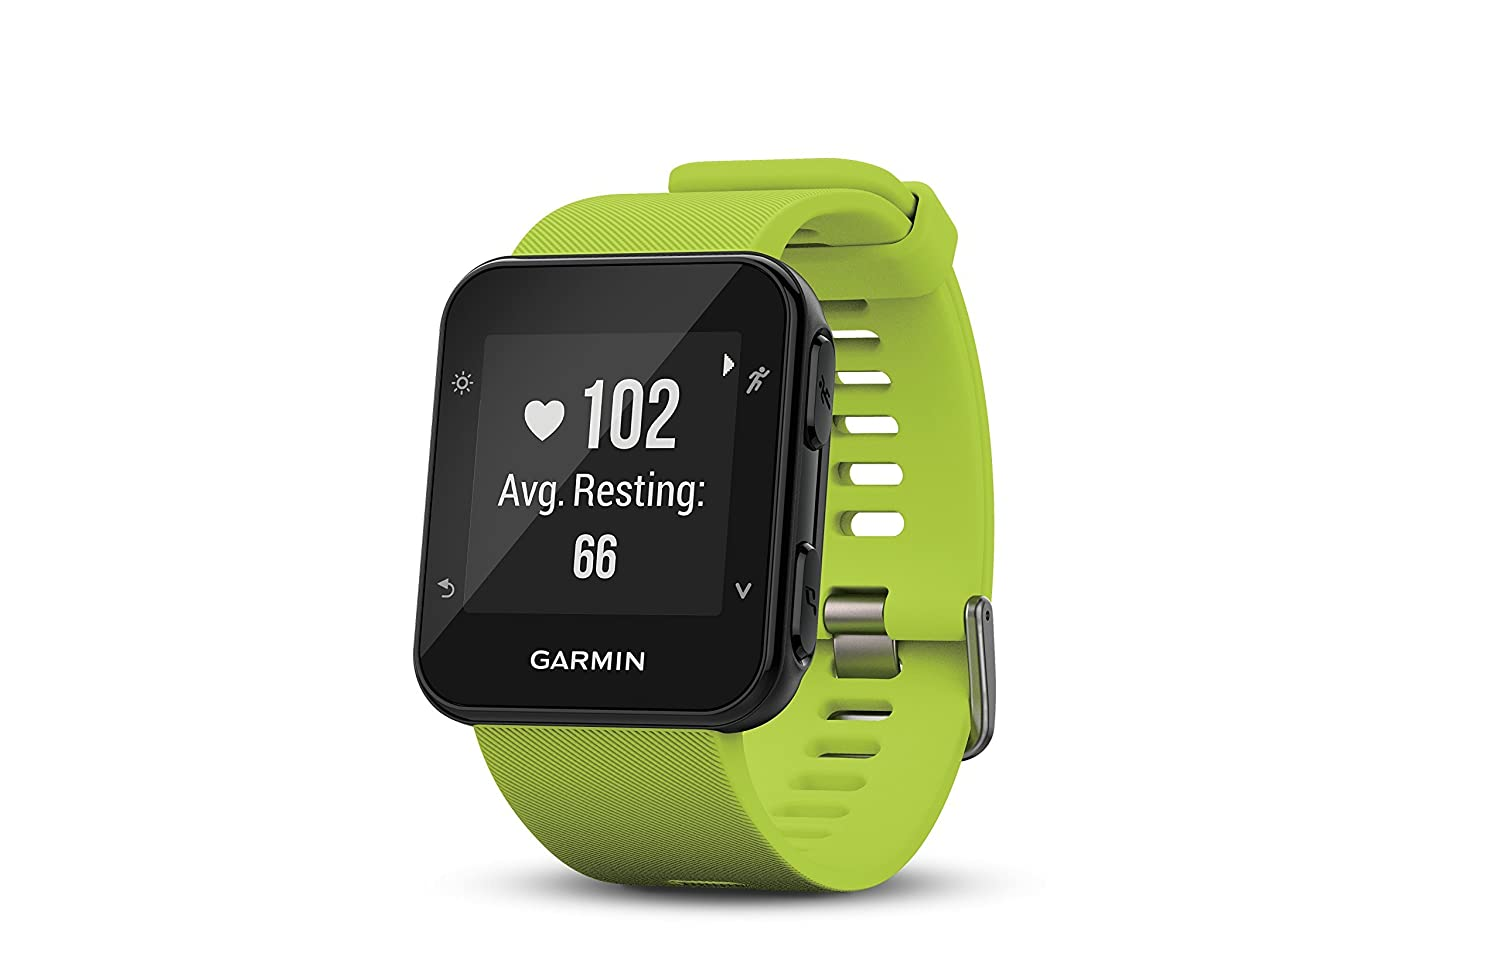 Garmin Forerunner 35 Watch, Limelight Renewed